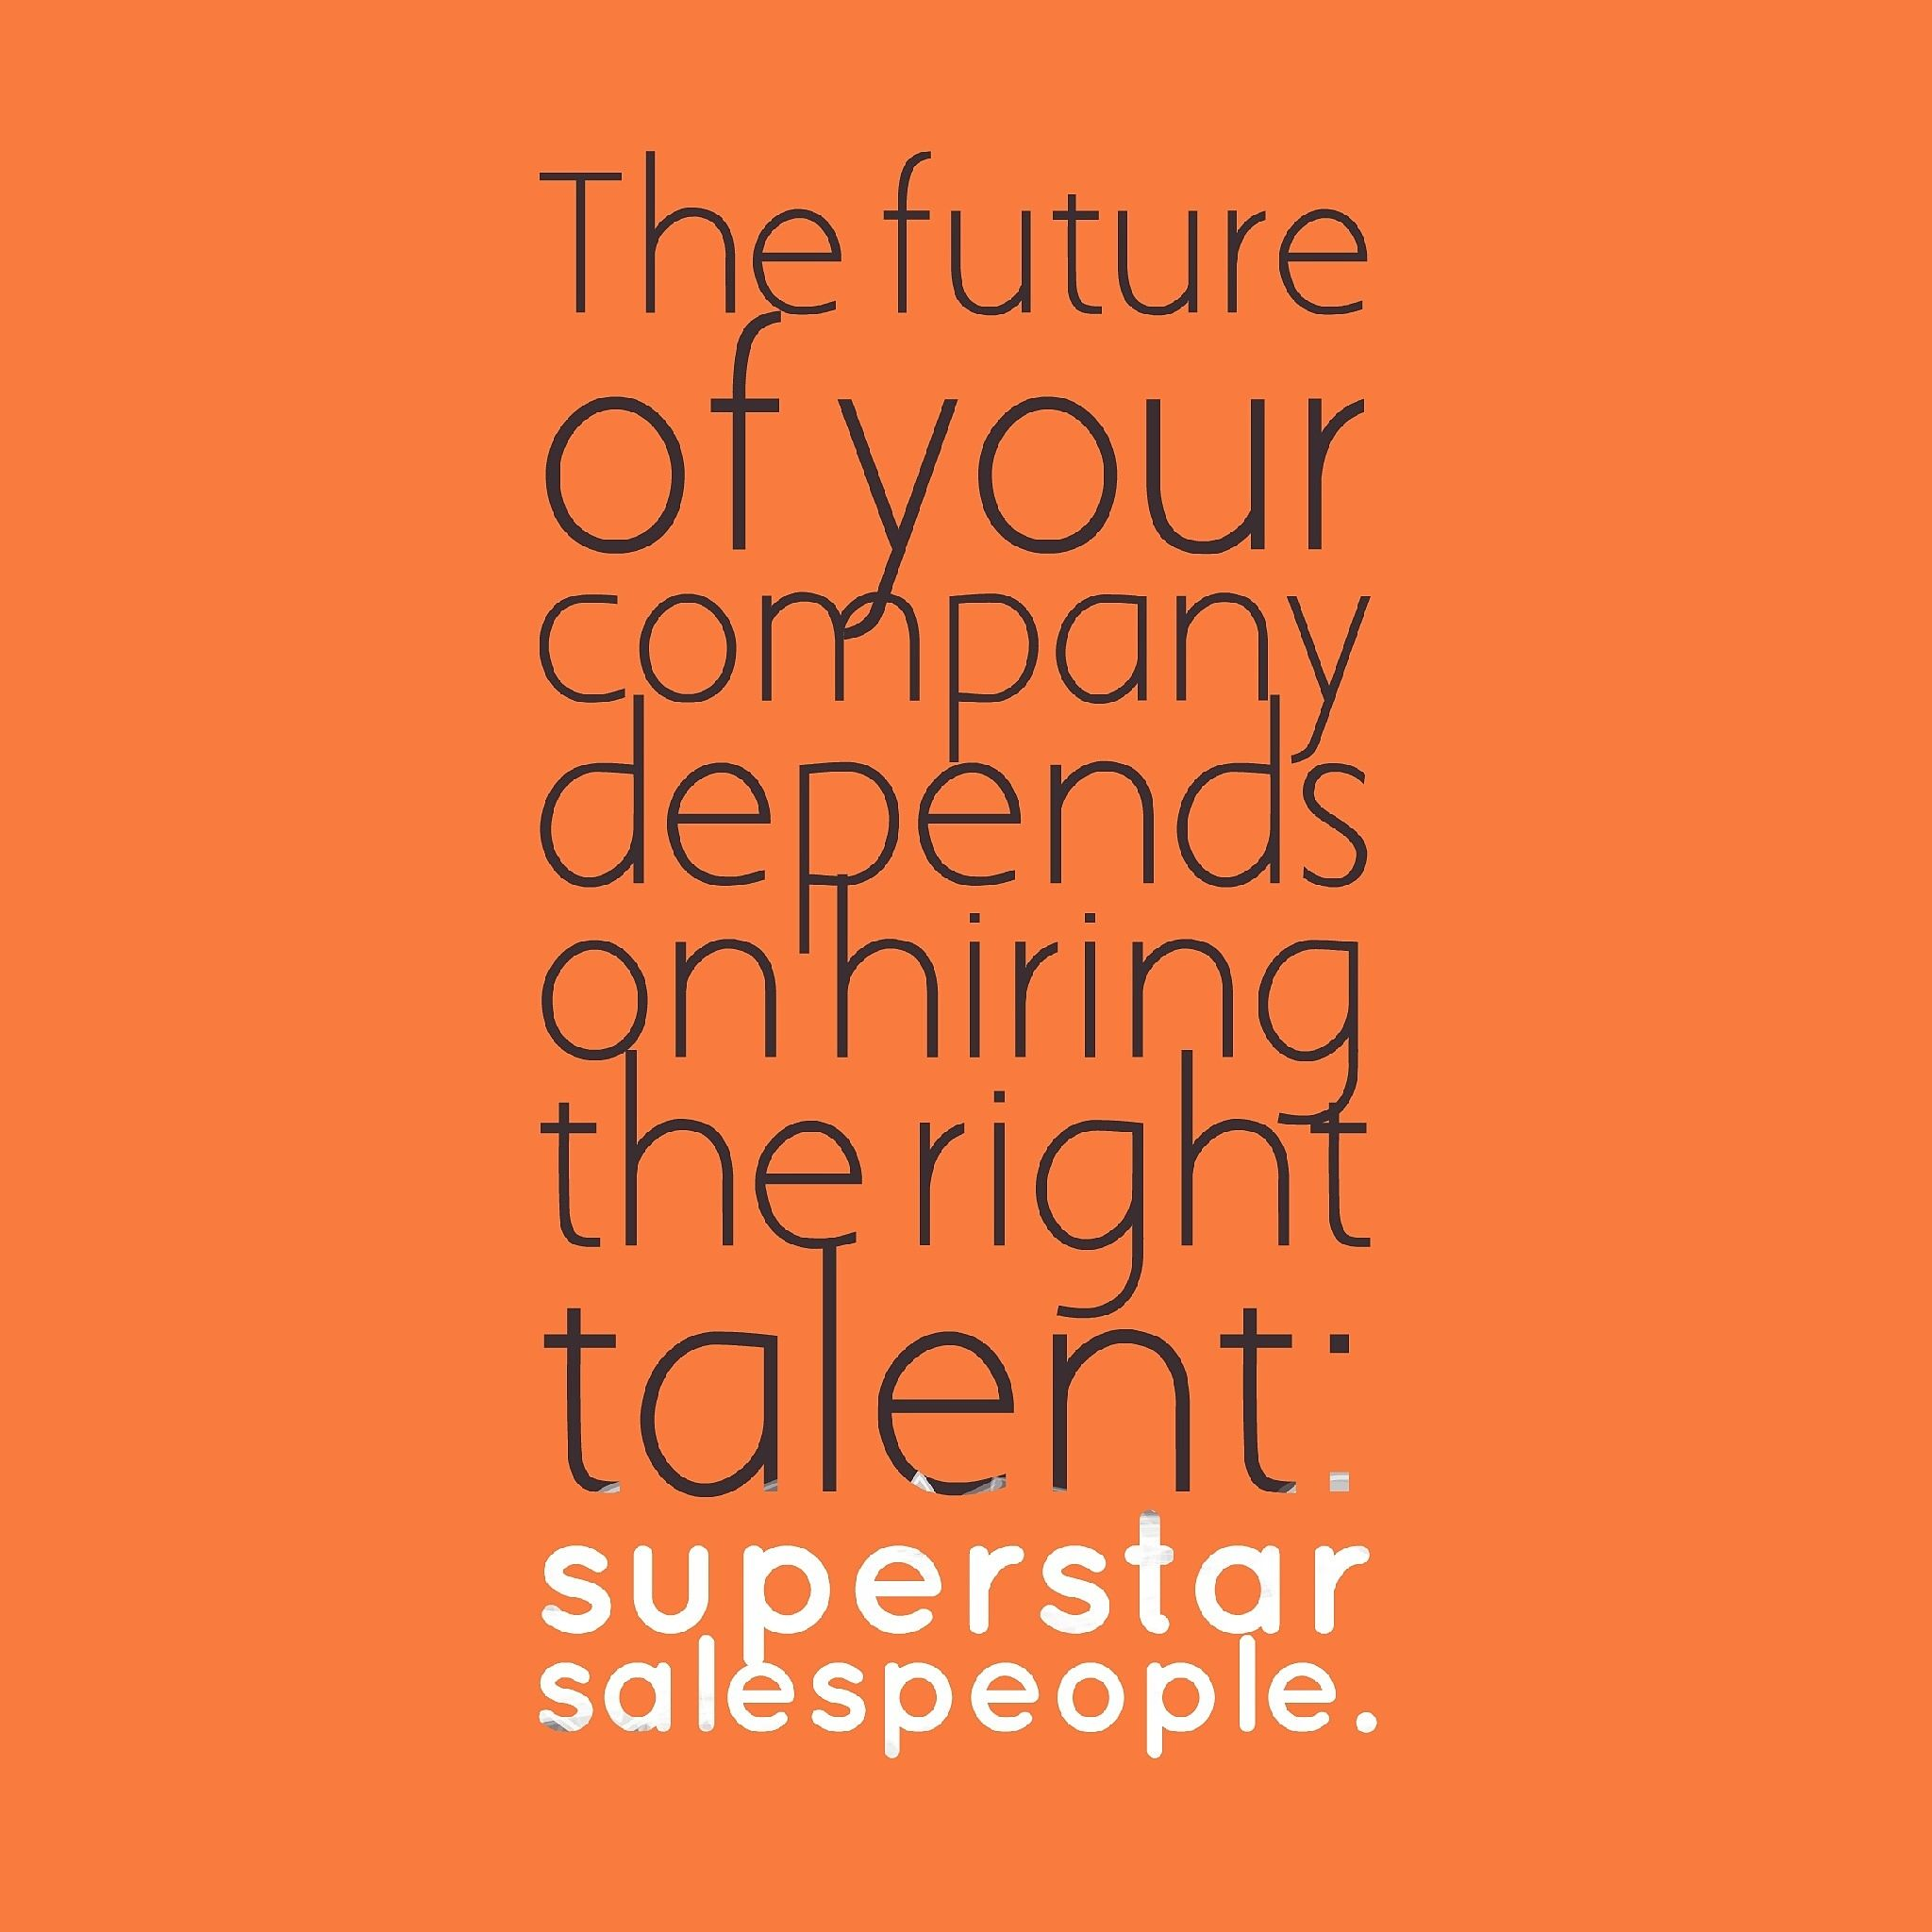 The future of your company depends upon hiring the right sales talent – Superstar salespeople.